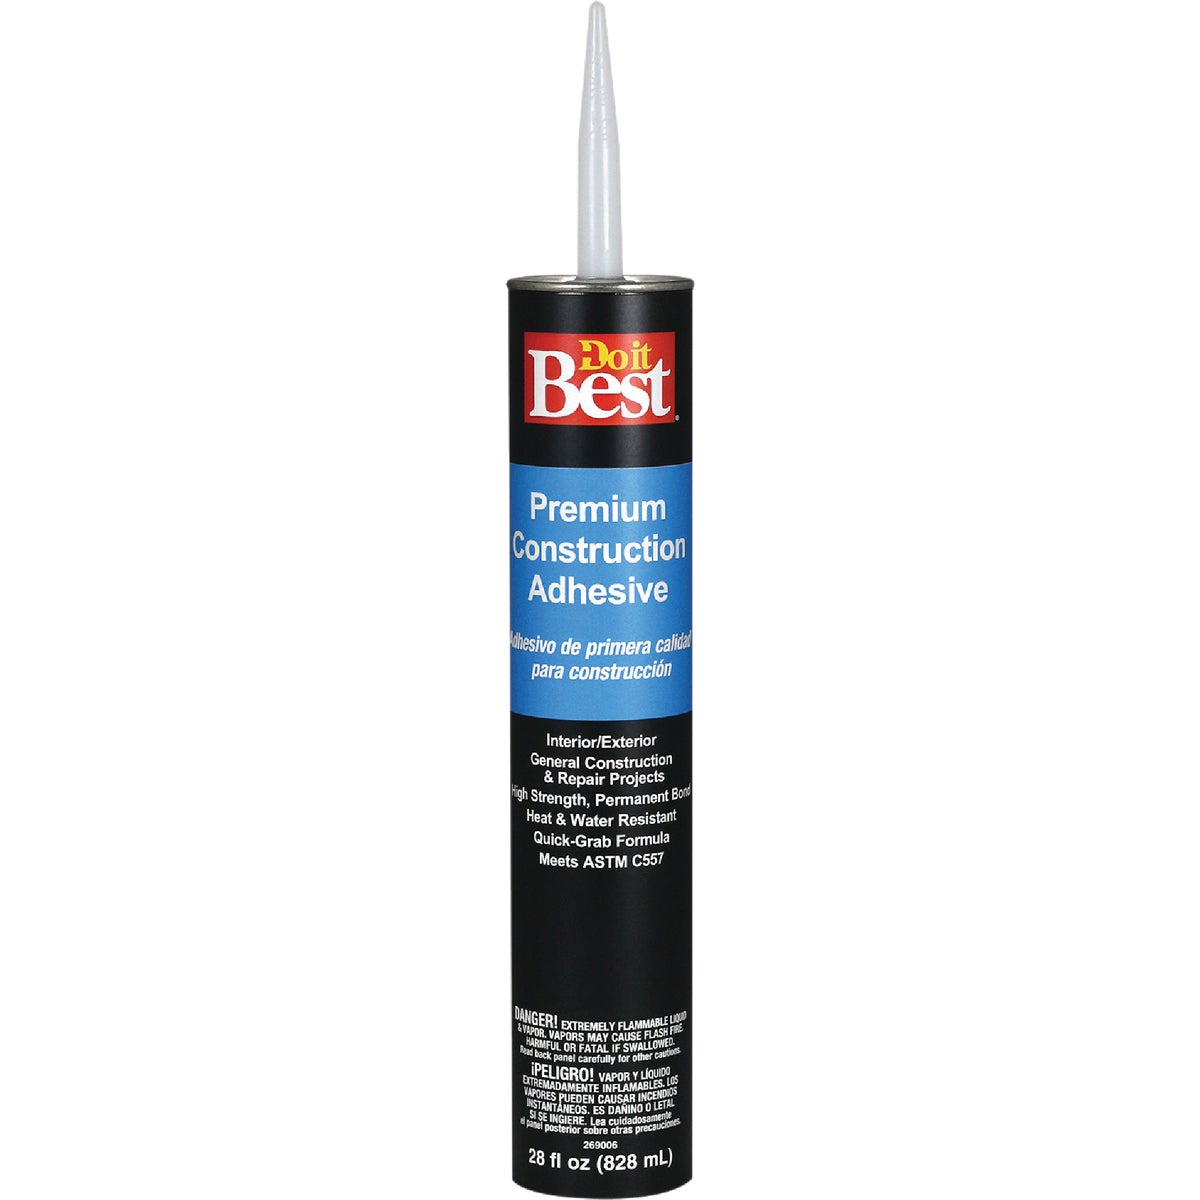 28OZ CONSTRCTN ADHESIVE - 26017 by Dap Inc